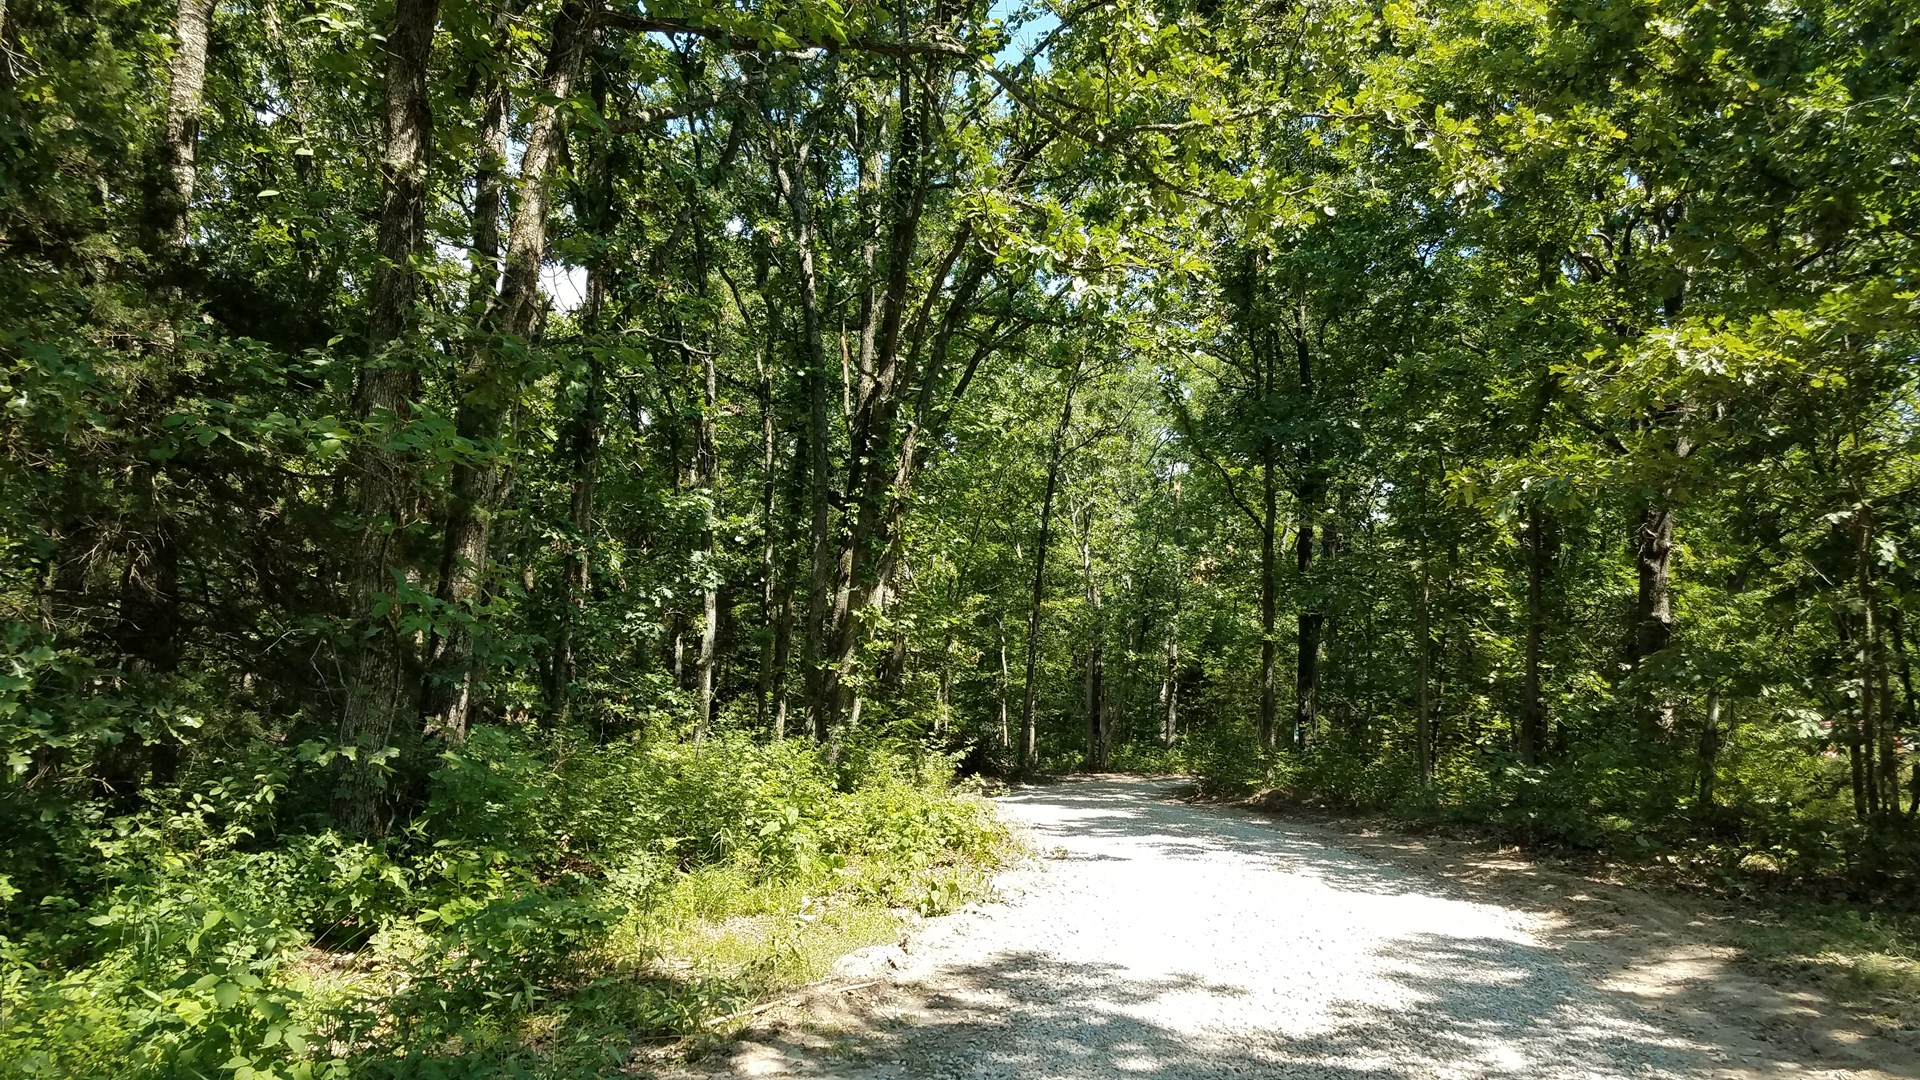 Vacant Land For Sale in Missouri! 40 Acres, Surveyed!